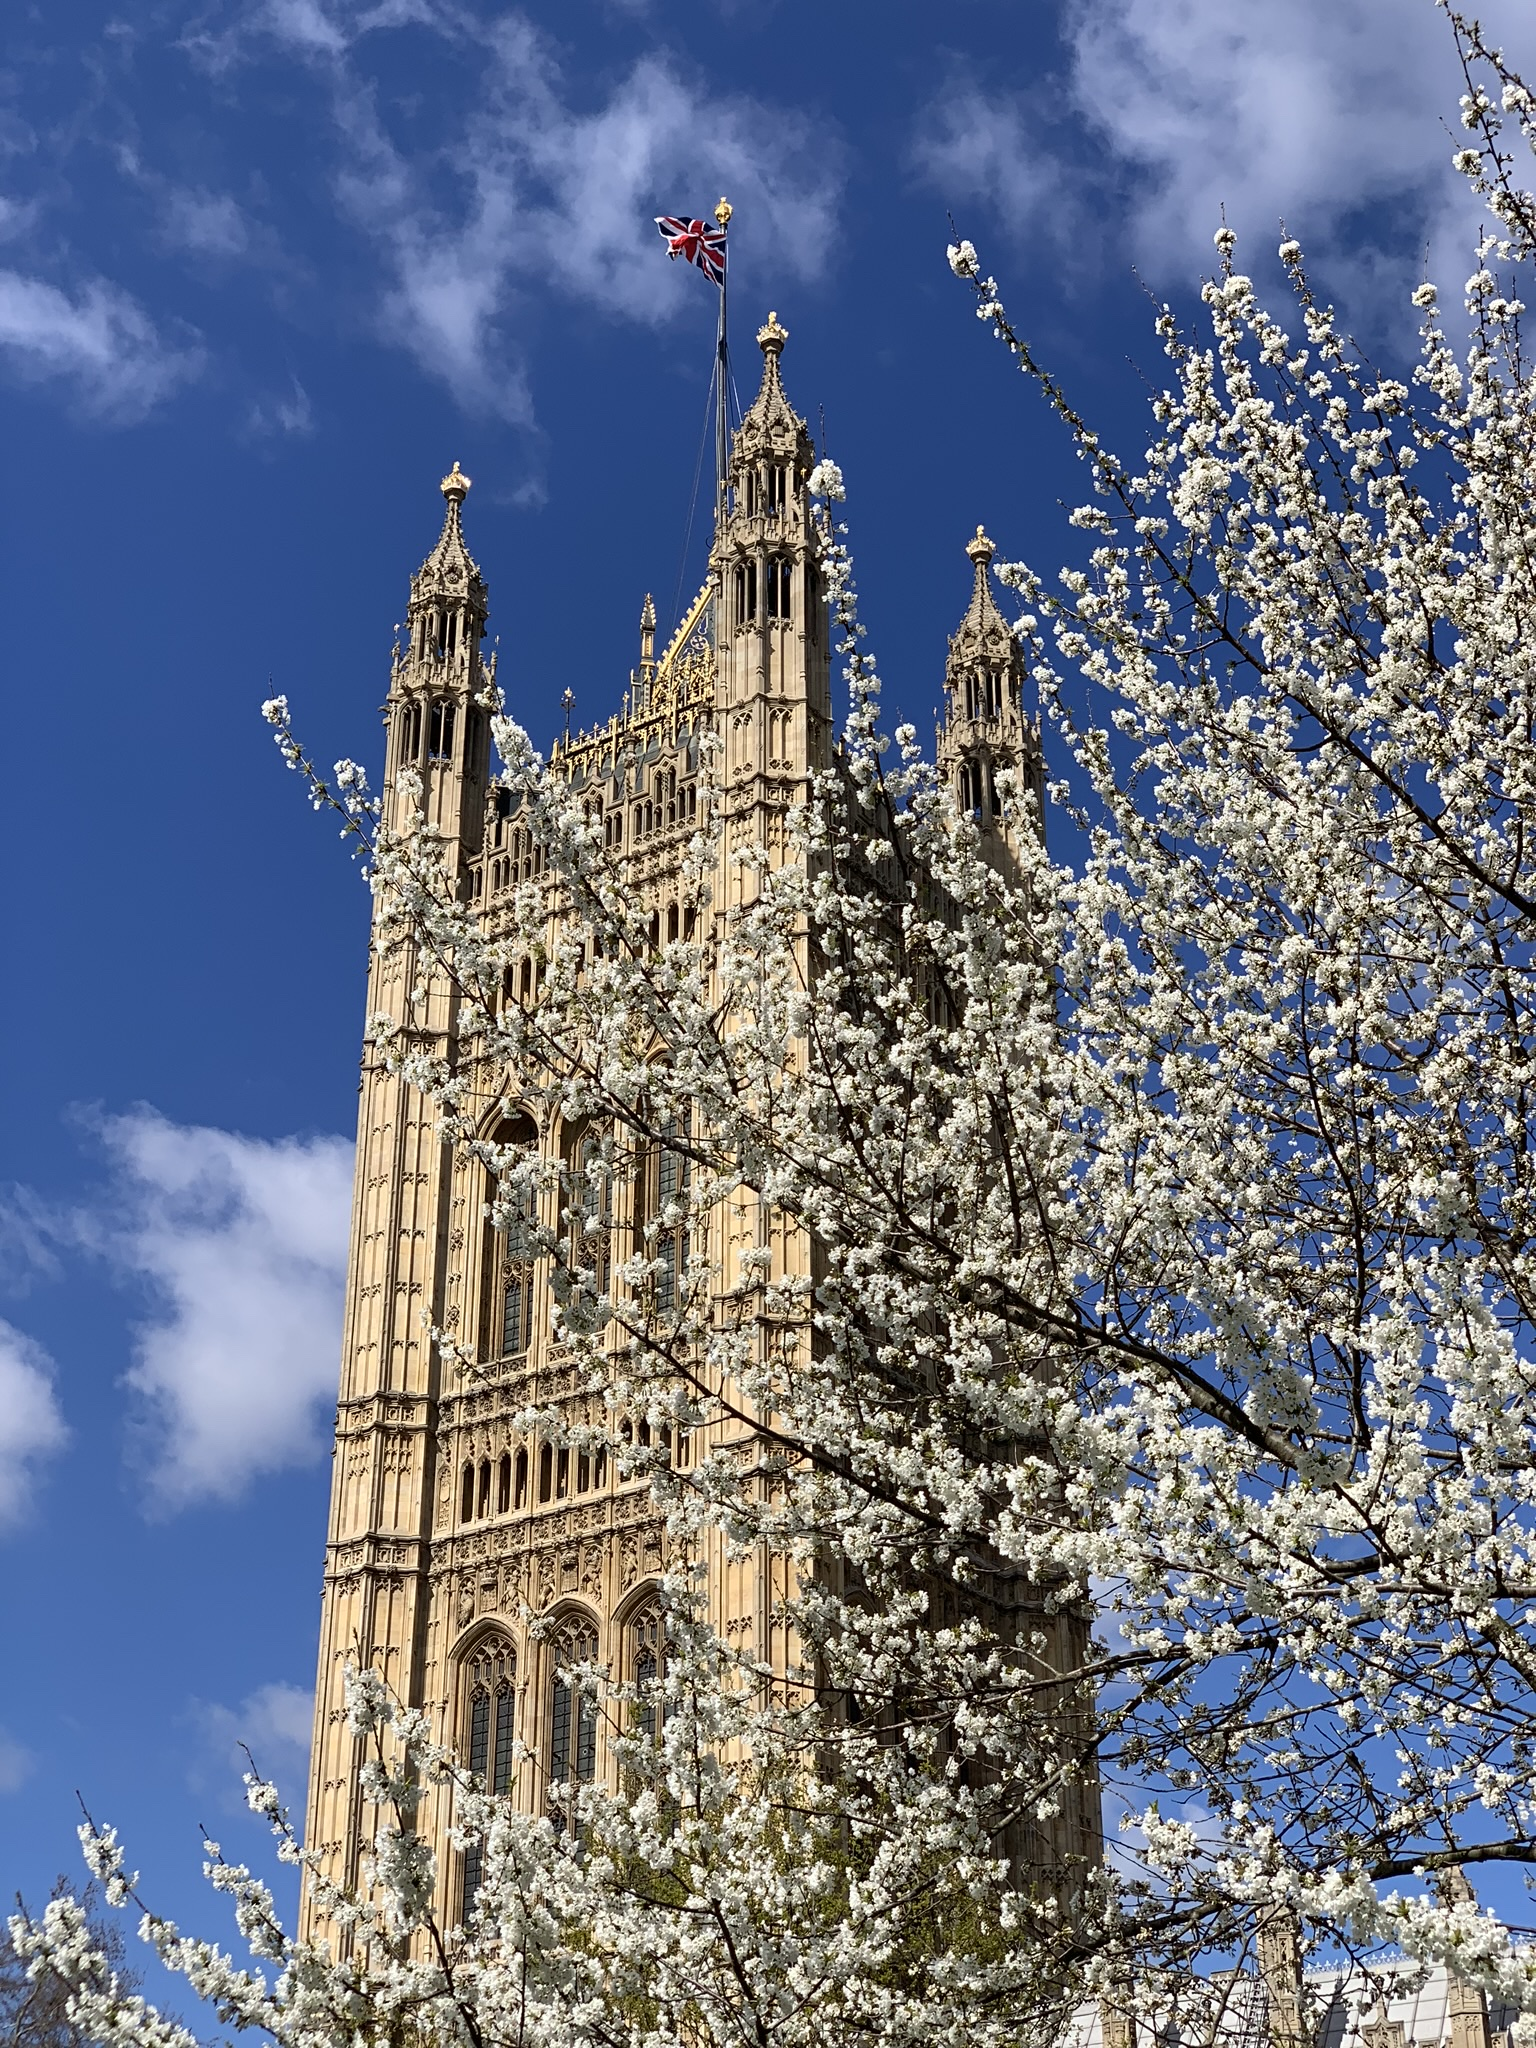 Looking at Victoria Tower through the cherry blossoms